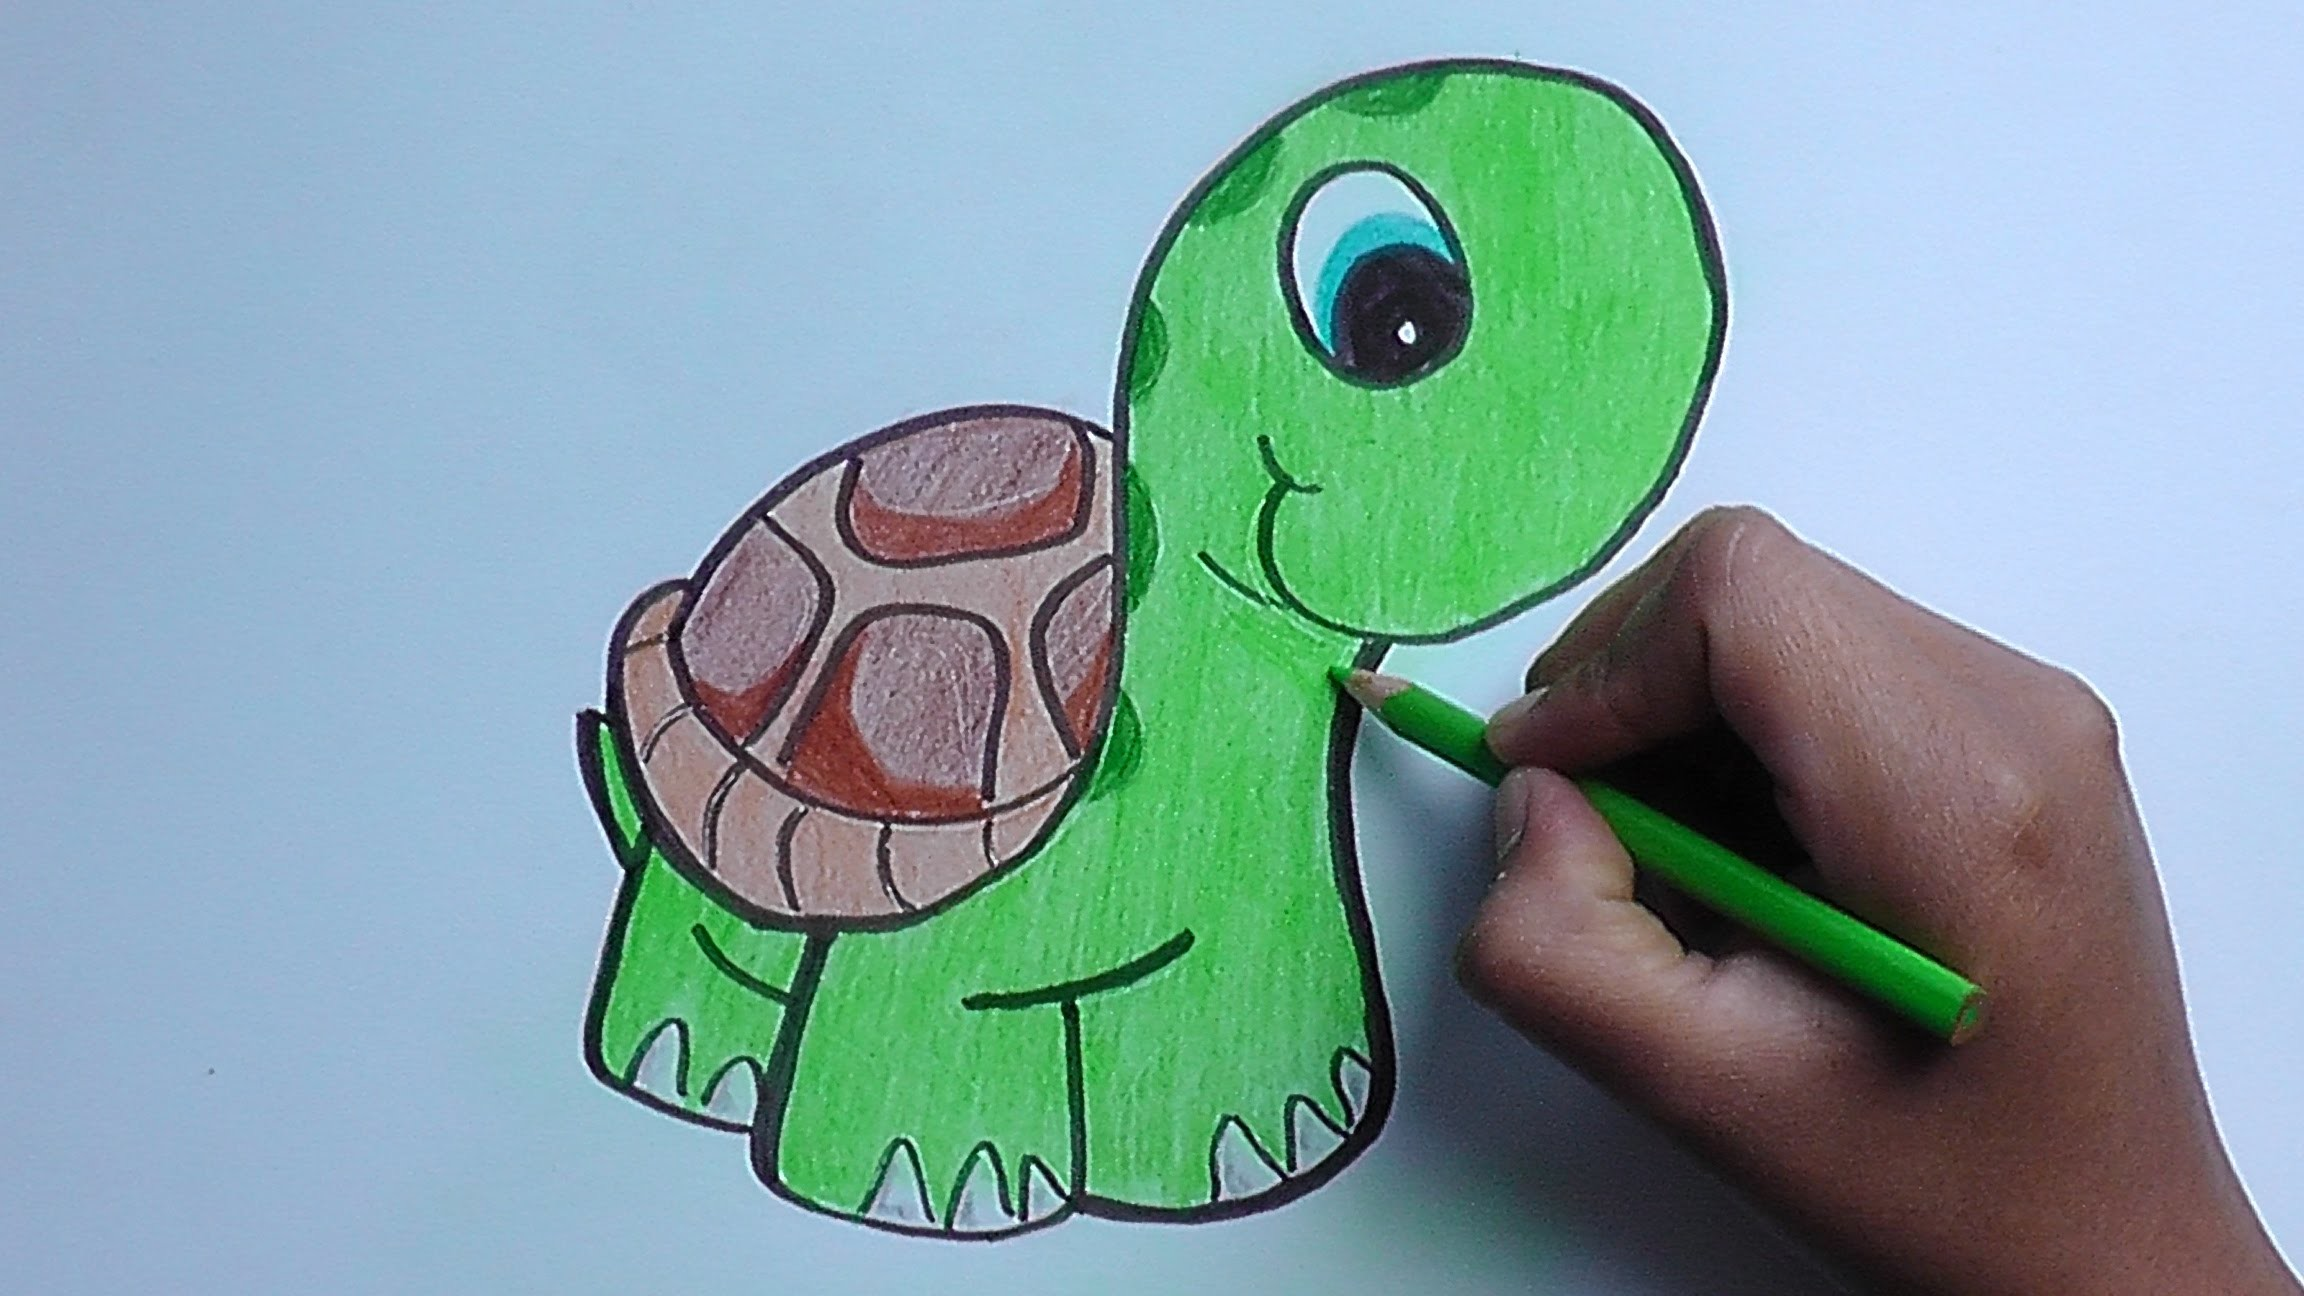 Dibujando y pintando a una tortuga - drawing and painting a turtle